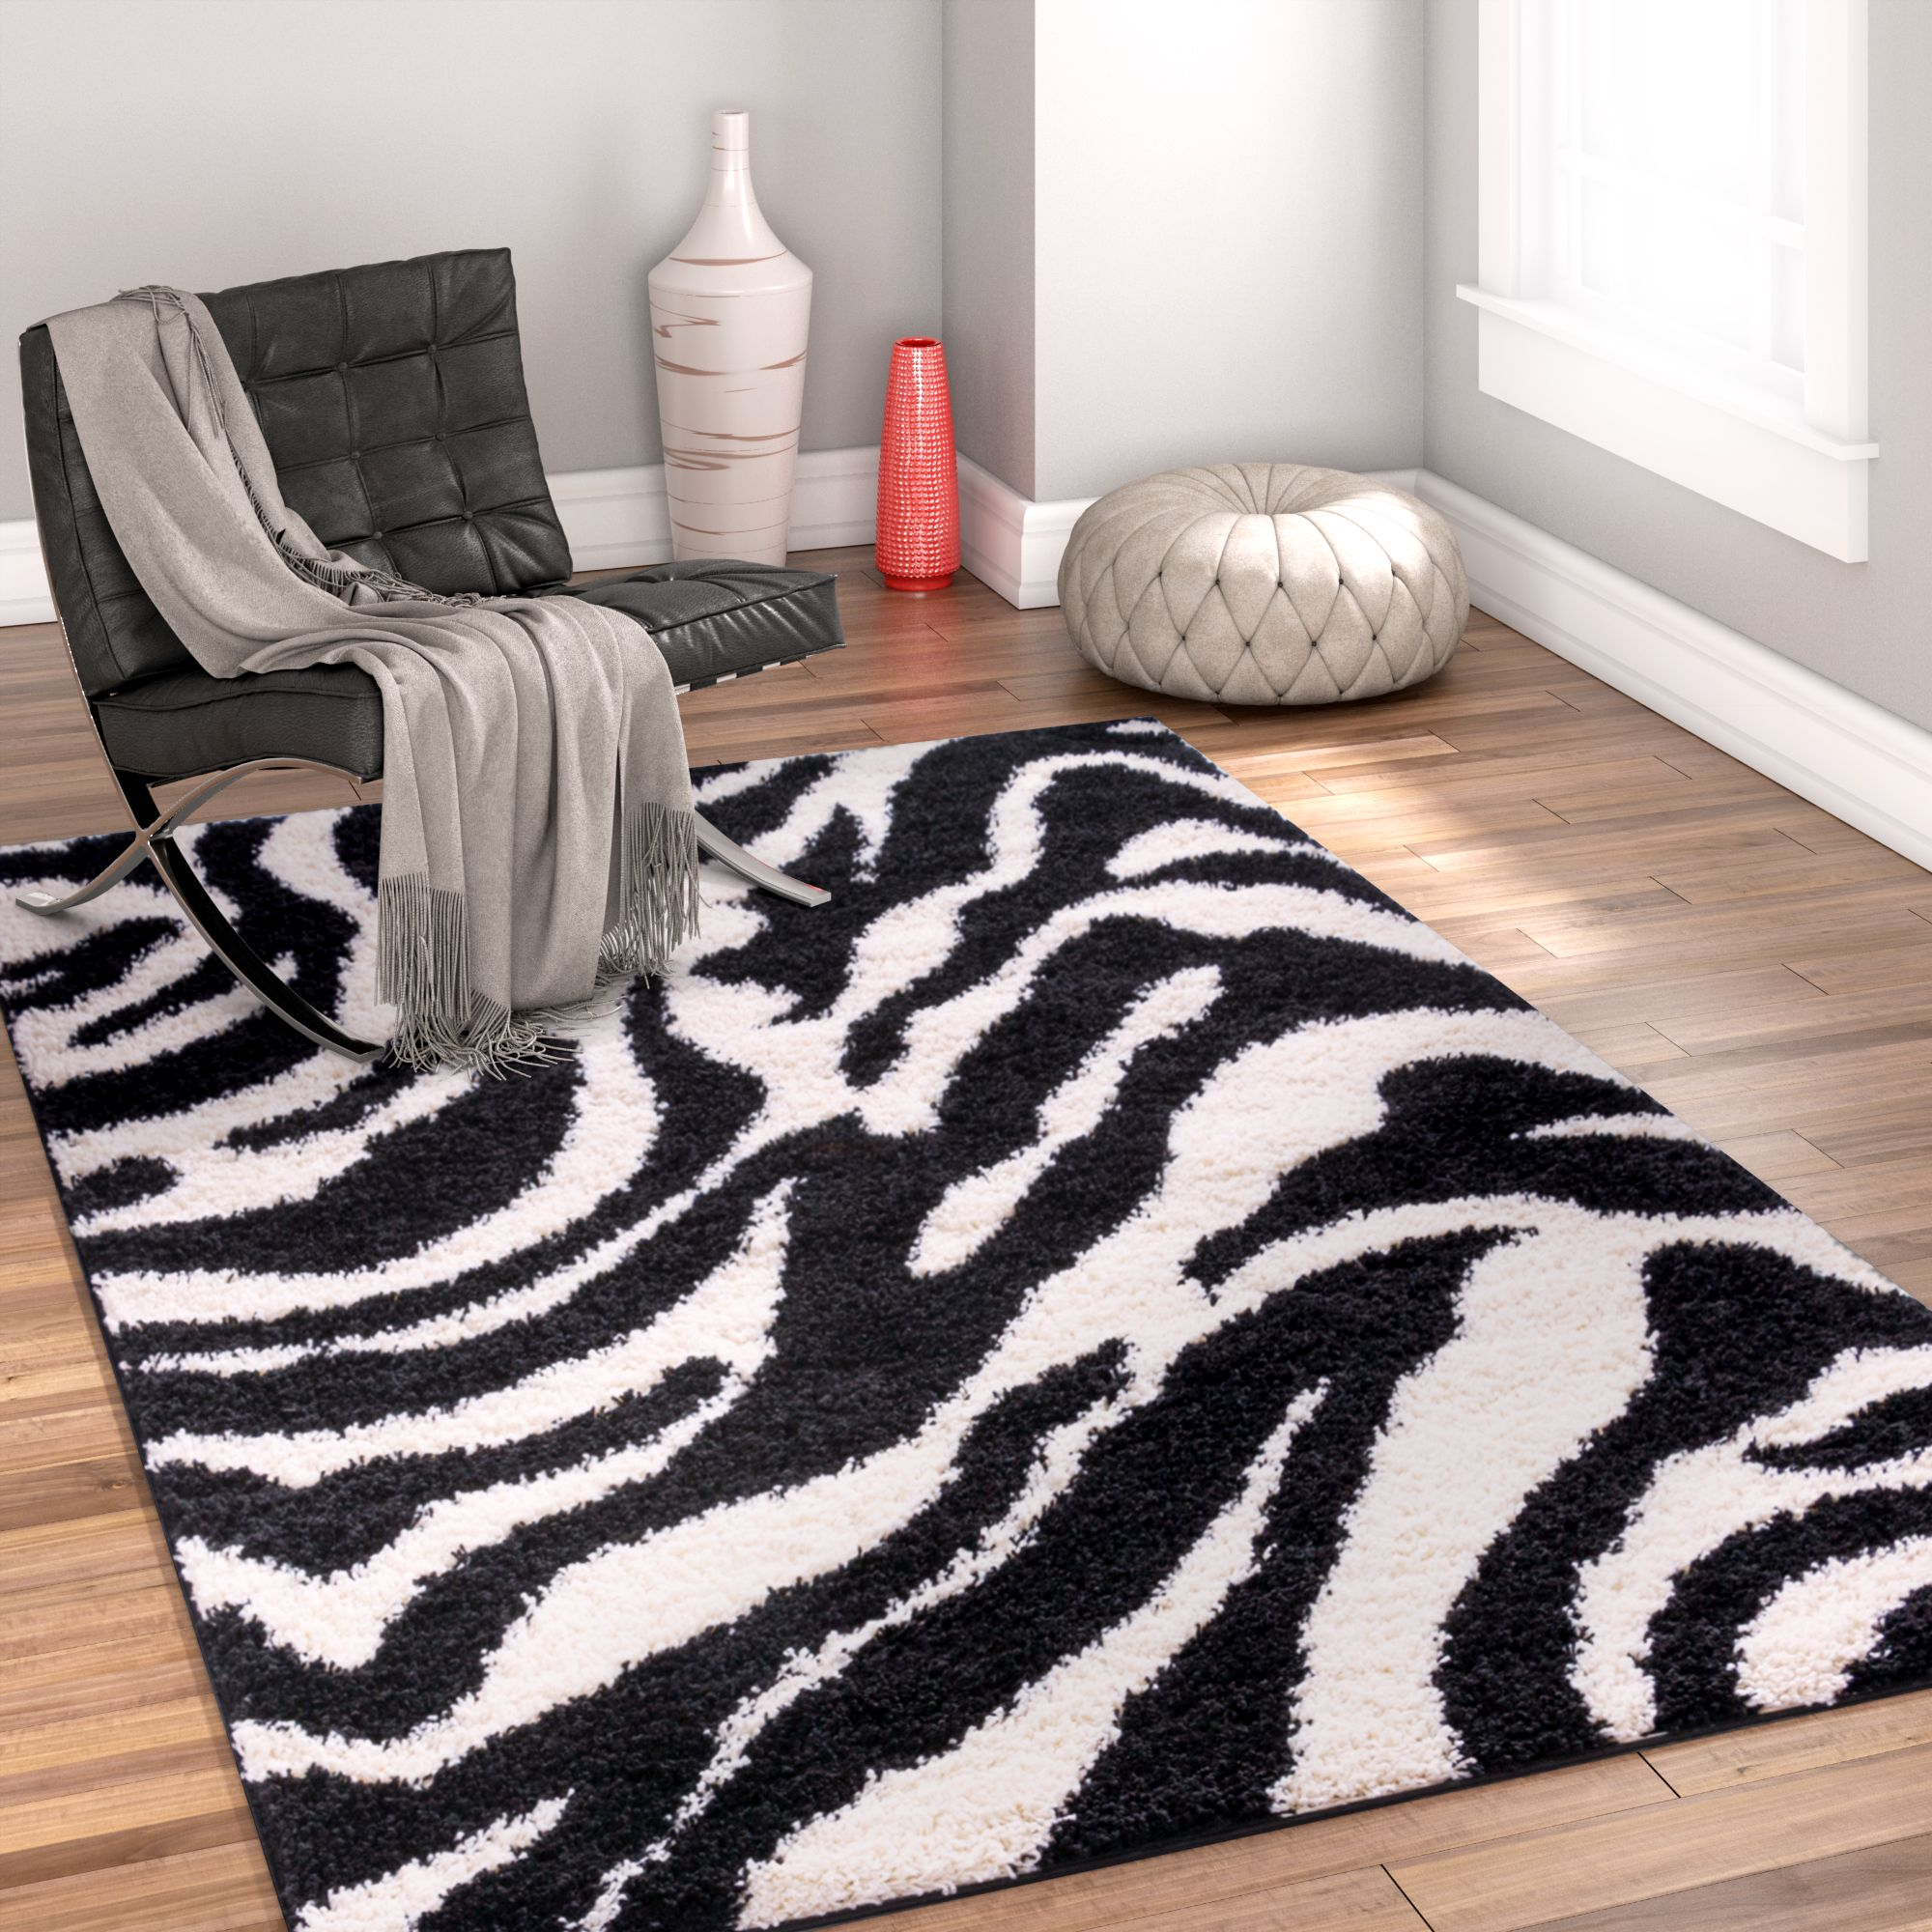 Well Woven Madison Shag Safari Zebra Black Area Rug